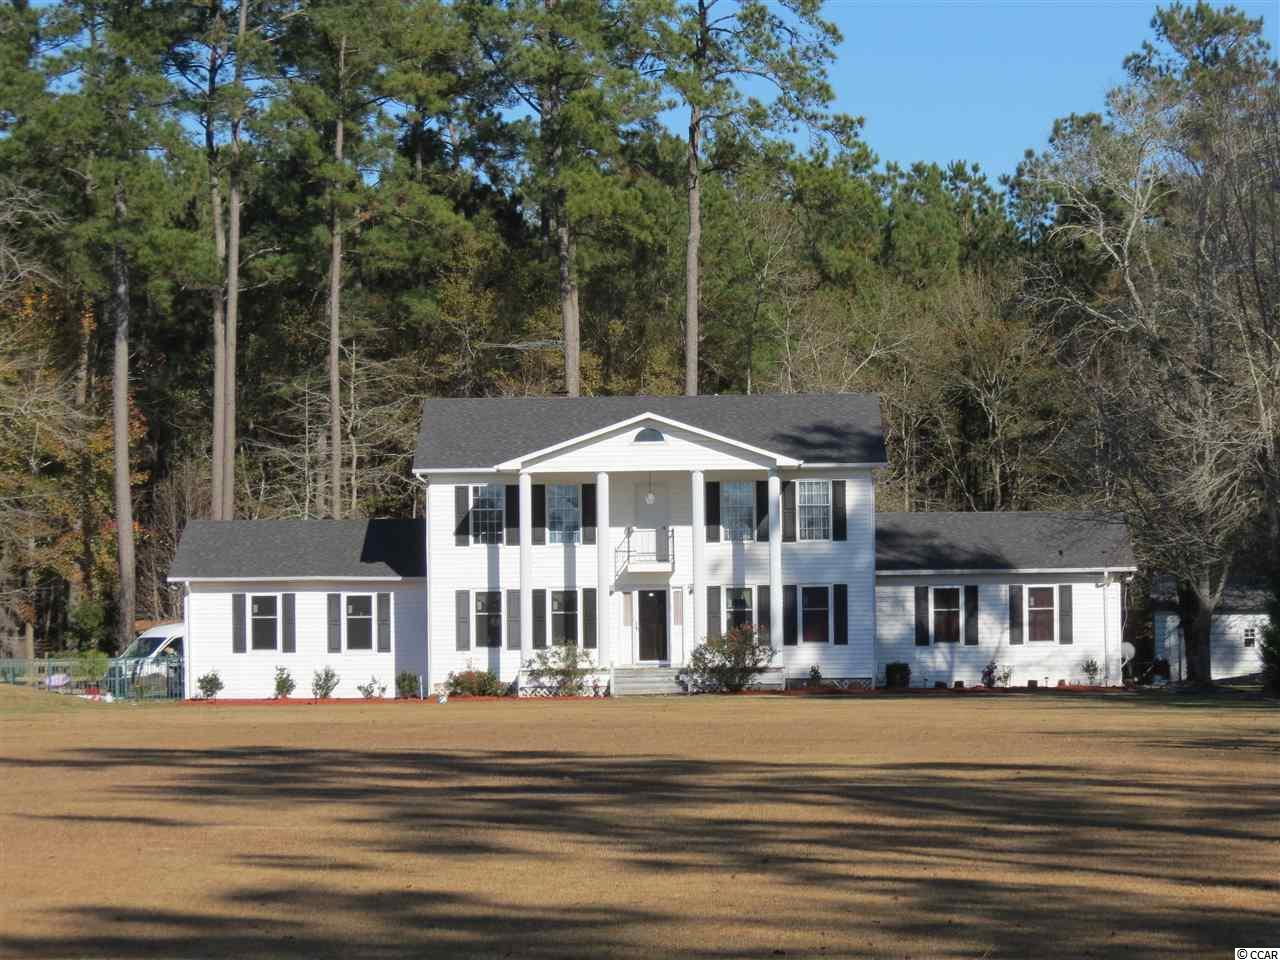 Single Family Home for Sale at 424 US Highway 521 424 US Highway 521 Andrews, South Carolina 29510 United States